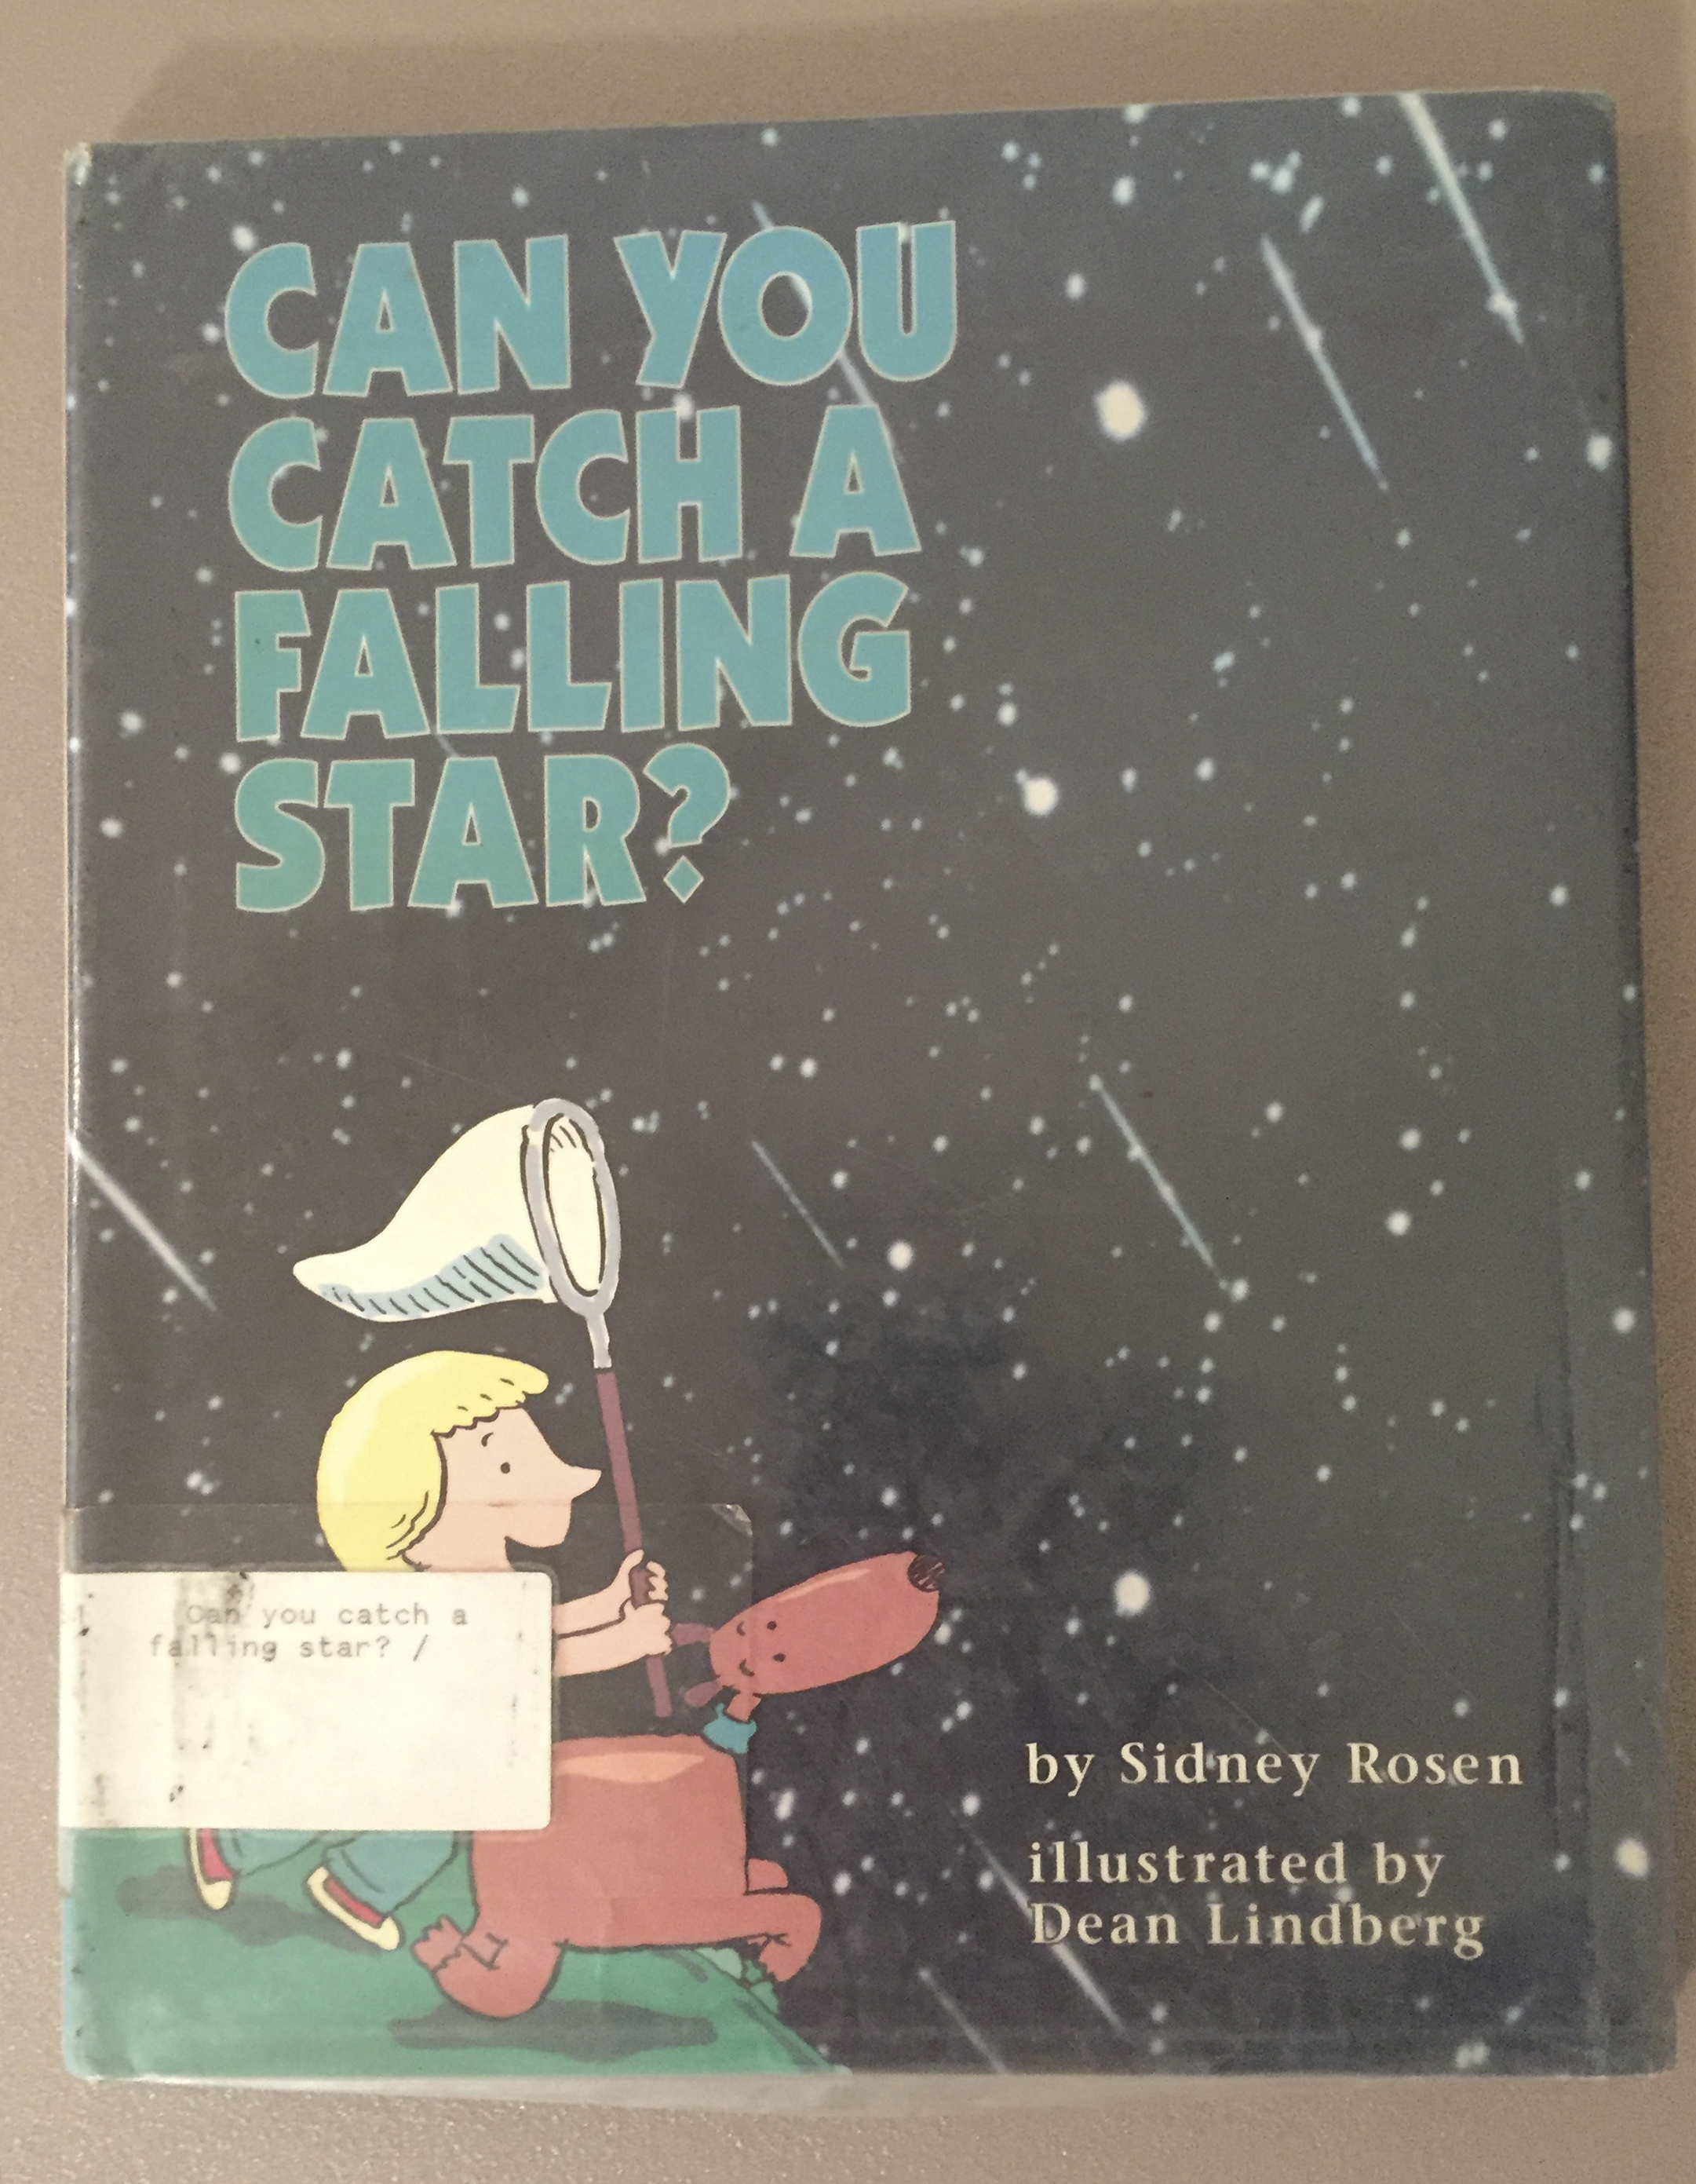 Catch a falling star - Book by Sidney Rosen, illustrated by Dean Lindberg